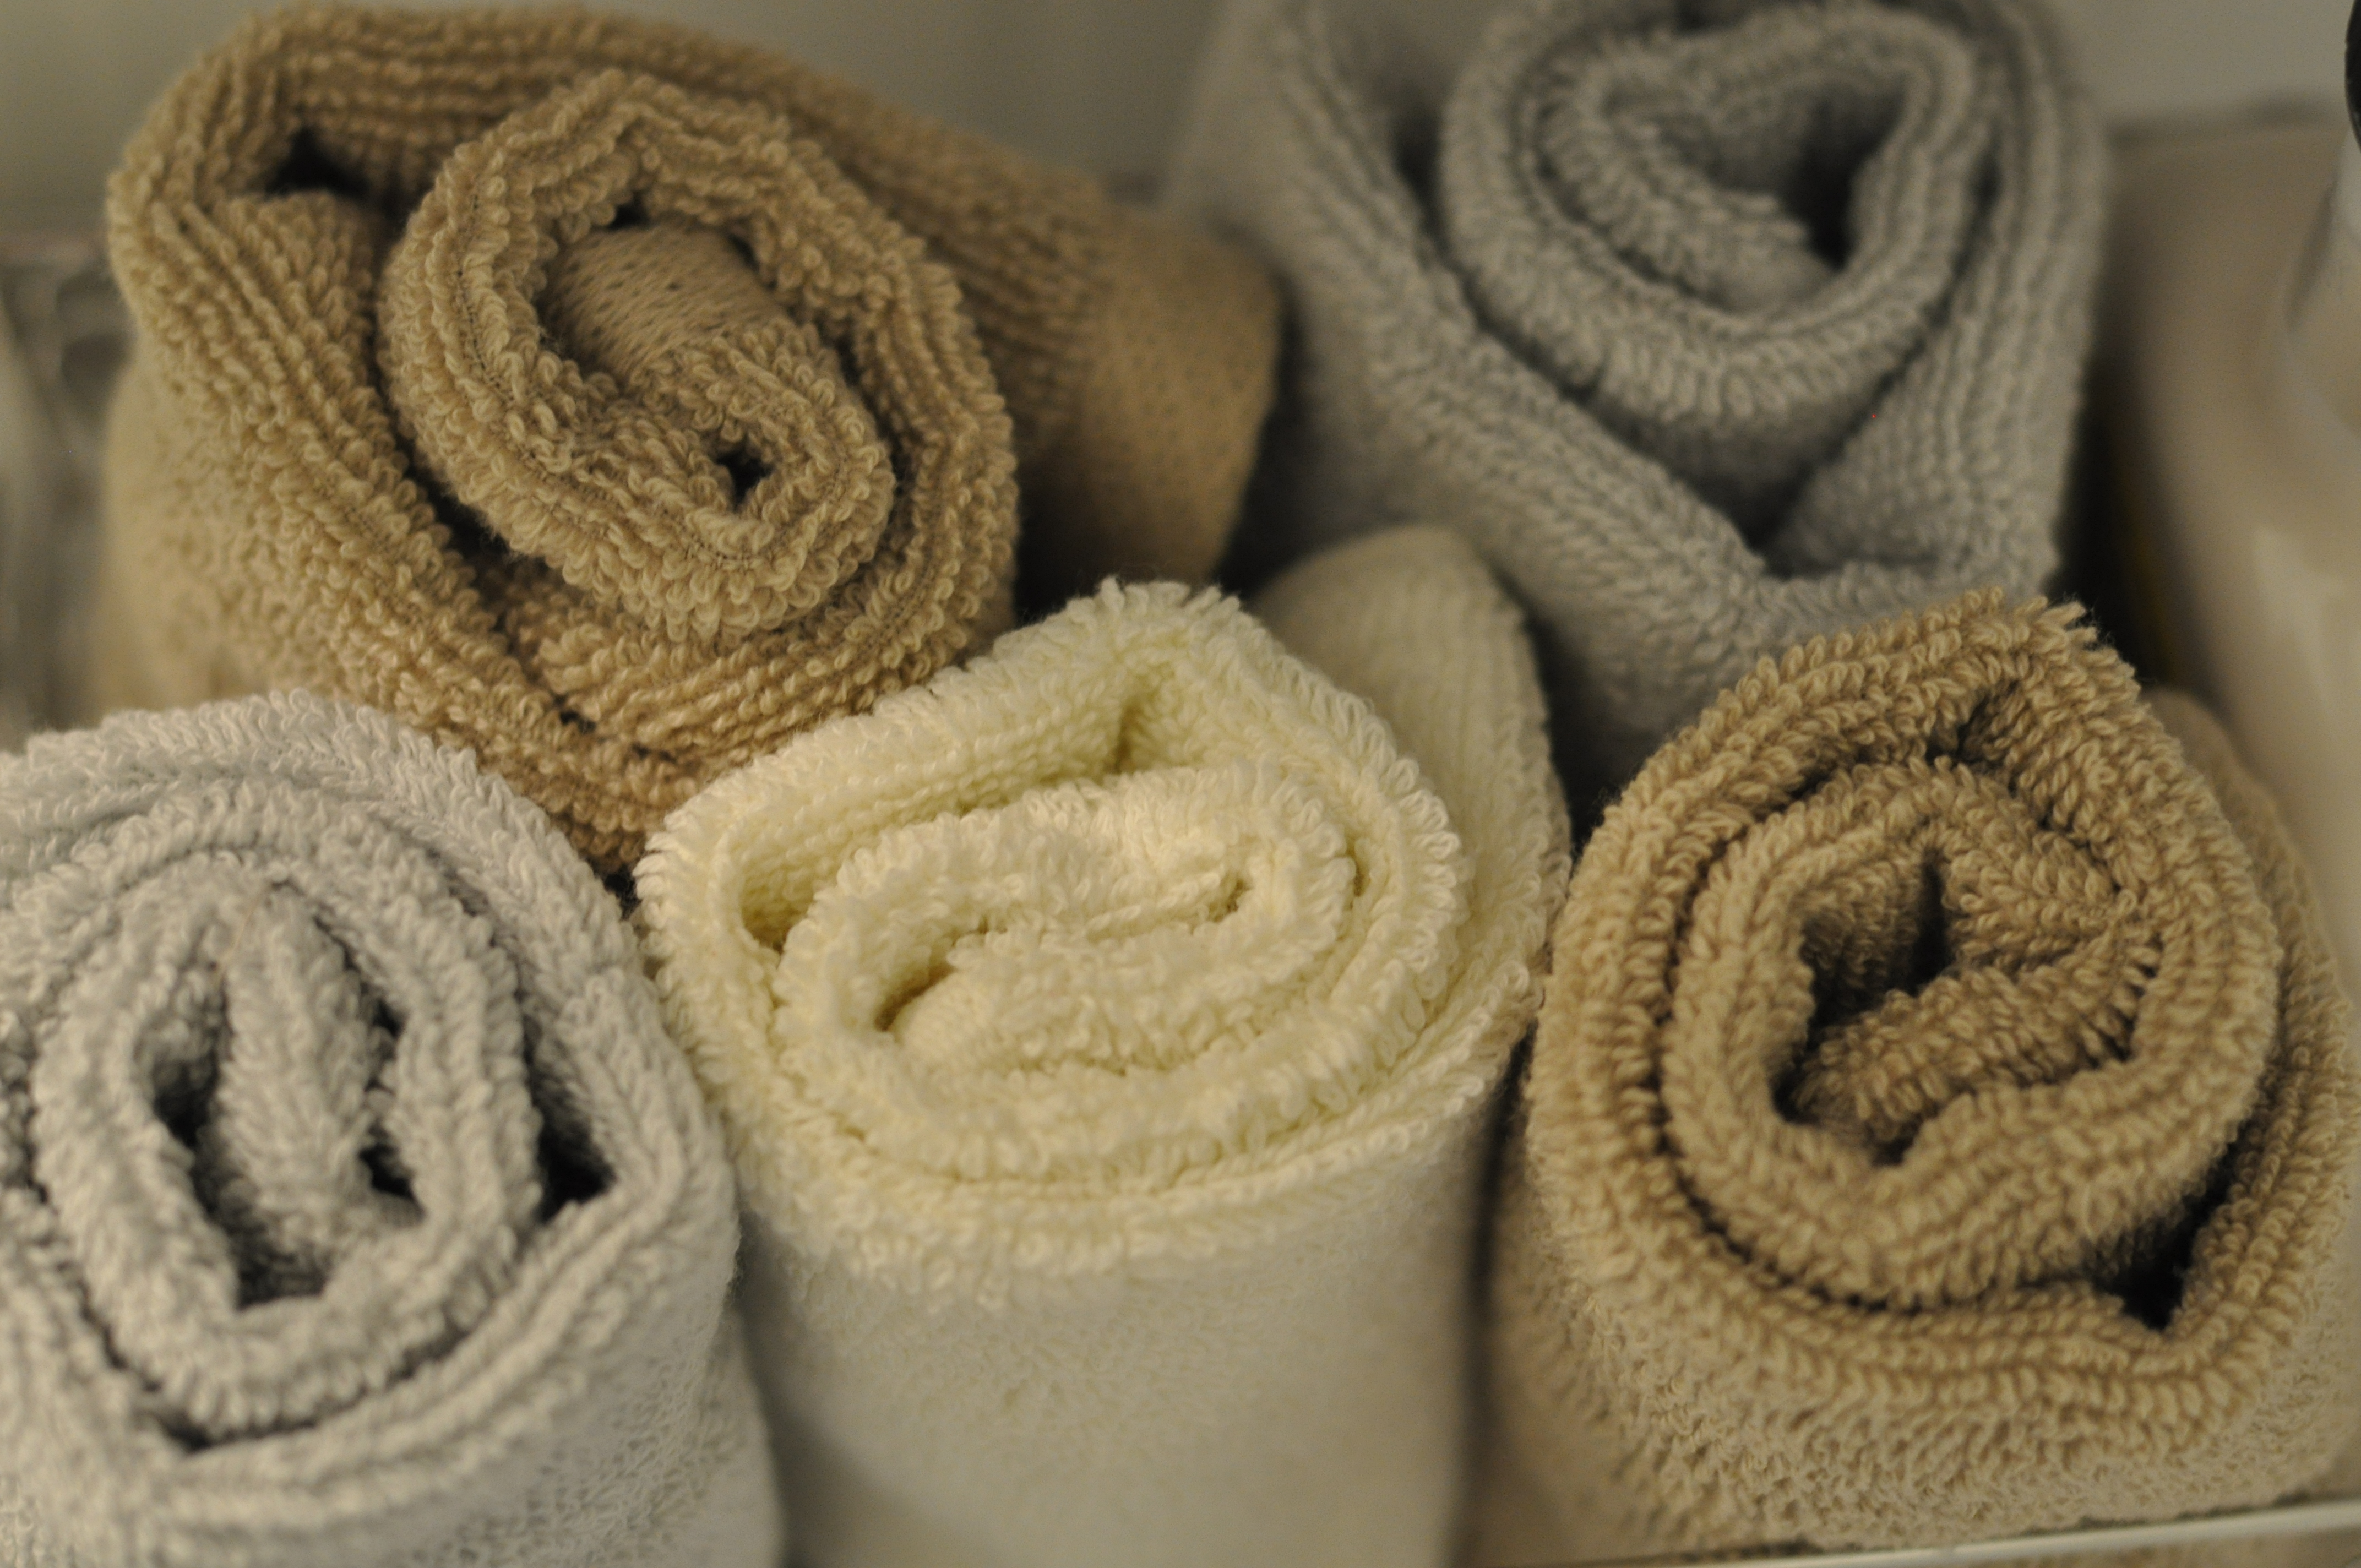 Rolled-up Towels